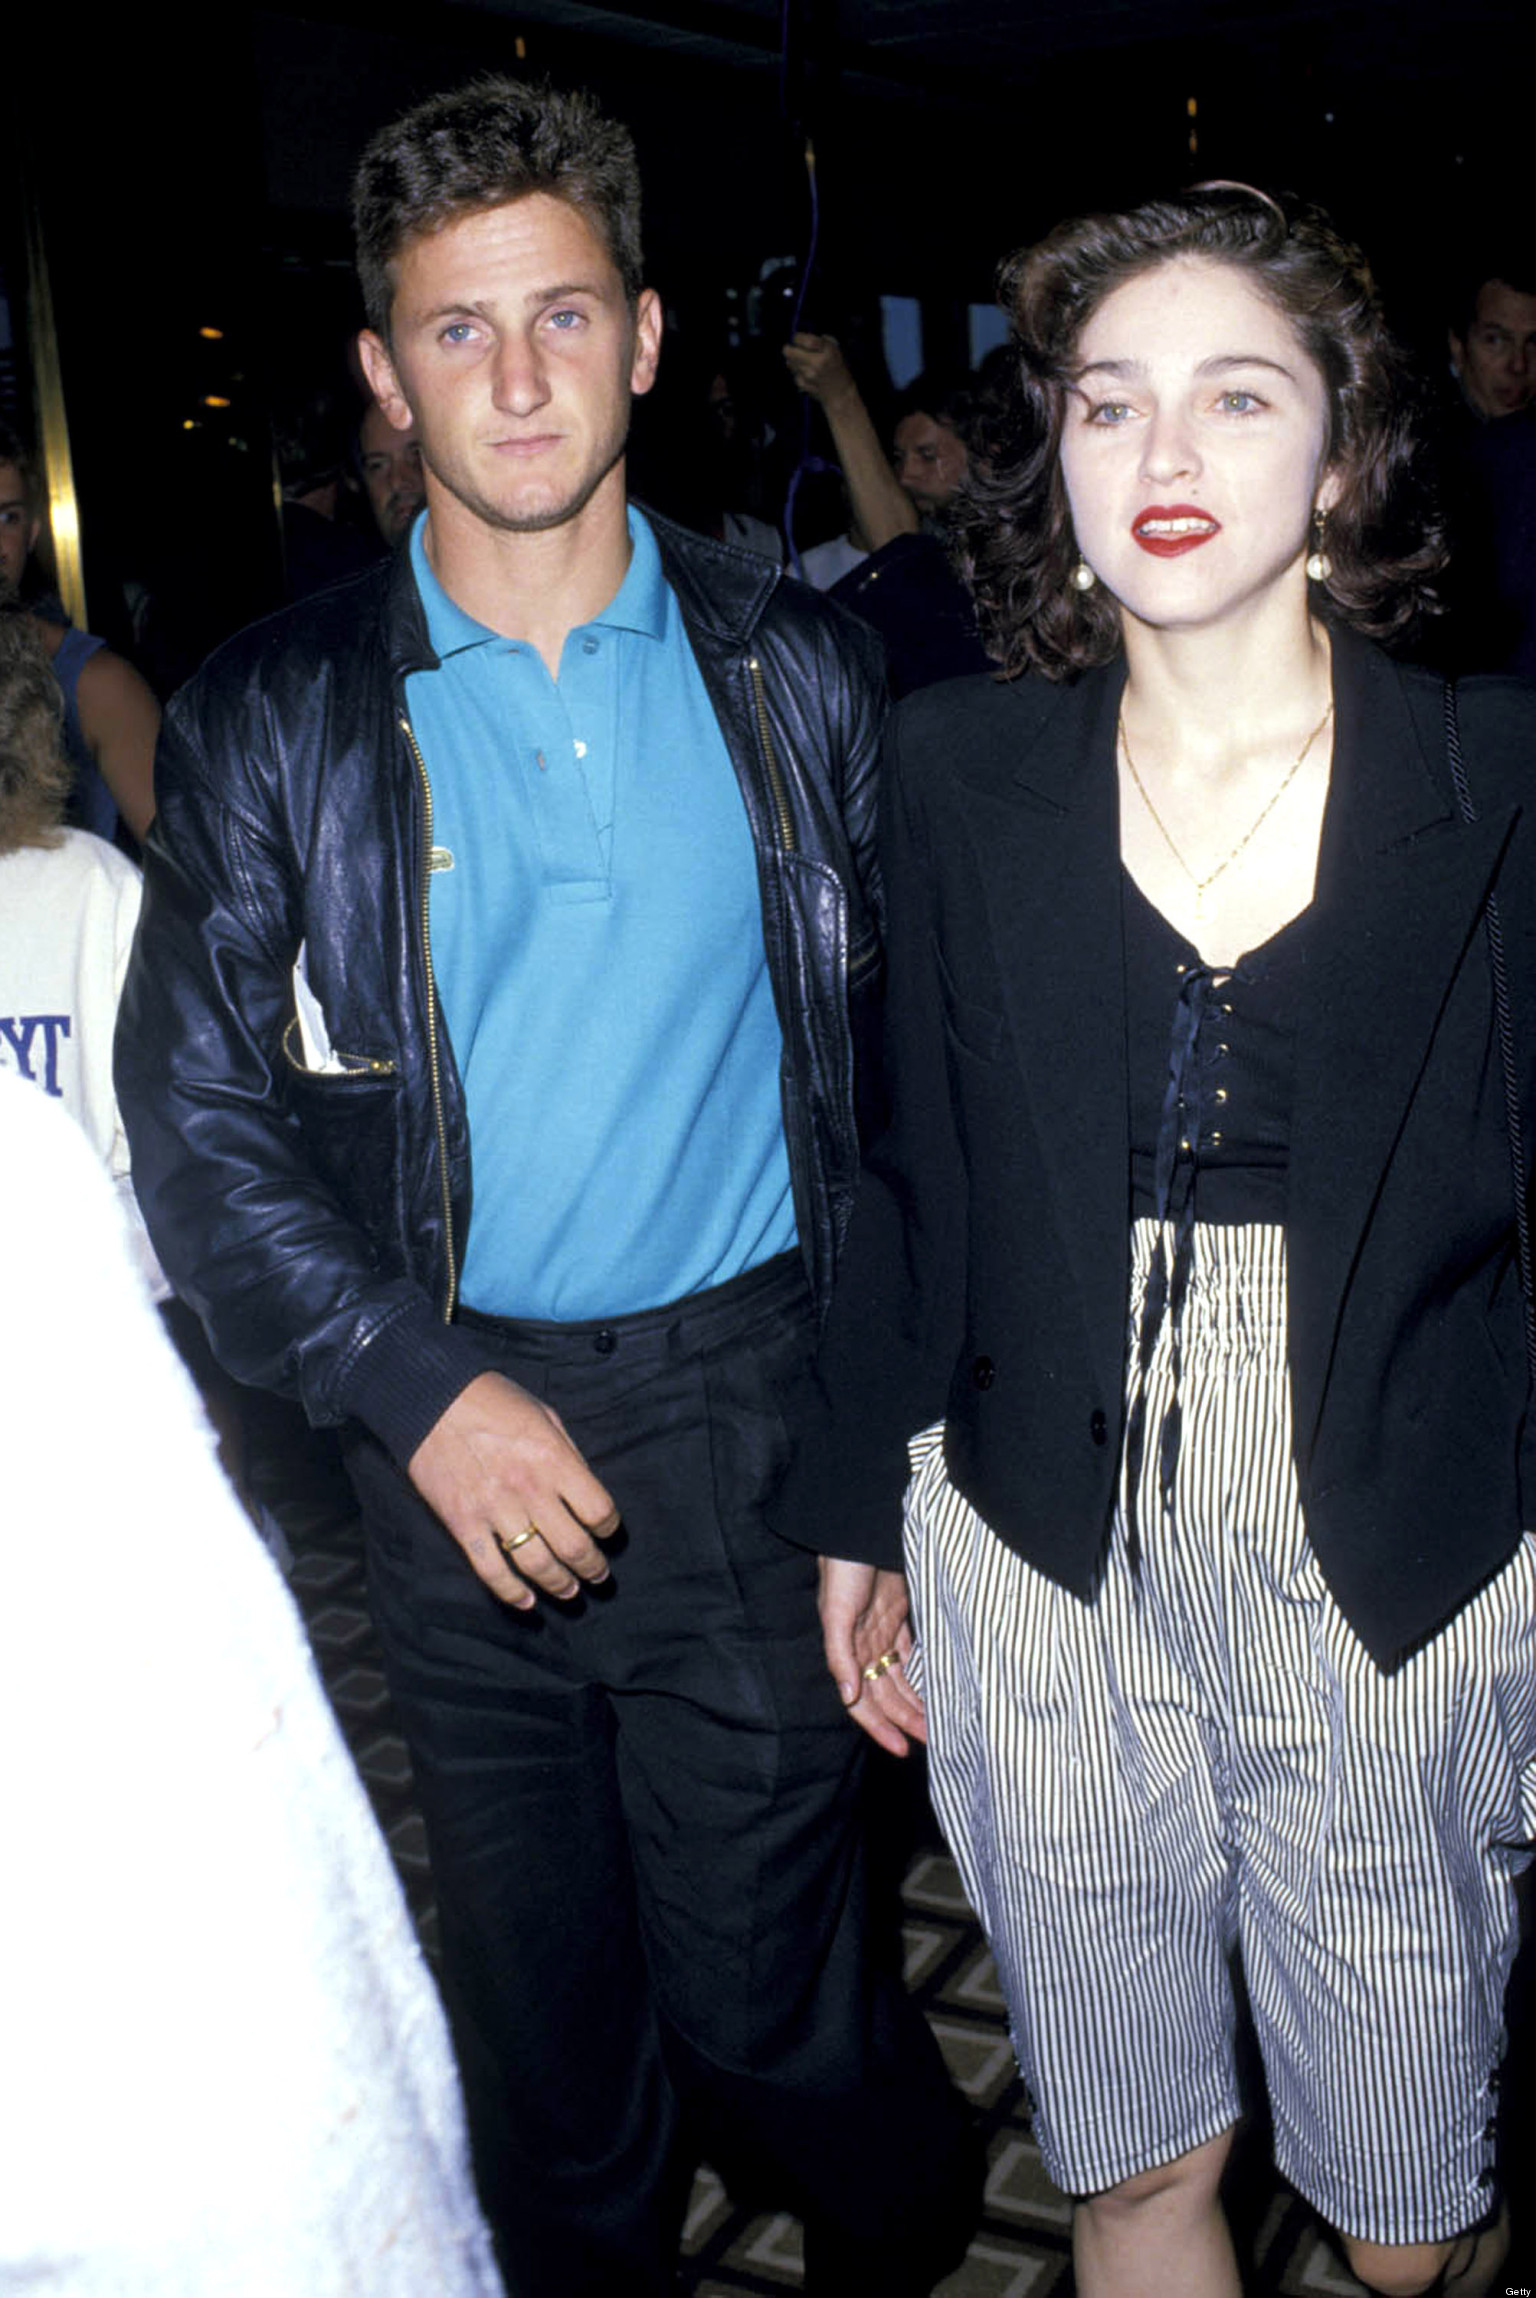 is madonna back dating sean penn Sean penn was previously married to robin wright (1996 - 2009) and madonna (1985 - 1989) sean penn has been engaged to charlize theron (2014 - 2015) sean penn has been in relationships with minka kelly.